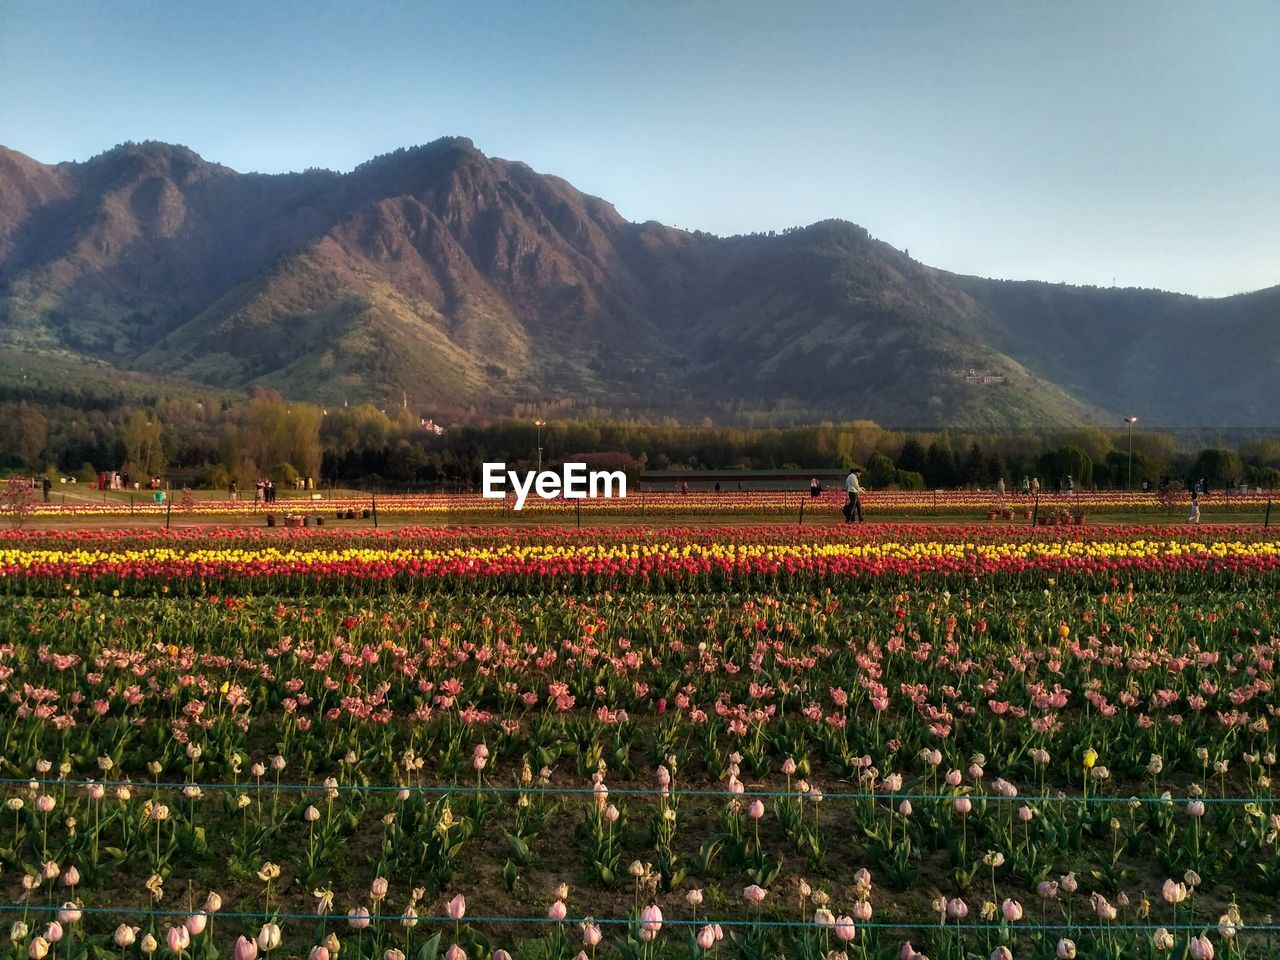 Scenic view of flowering plants against mountains and sky